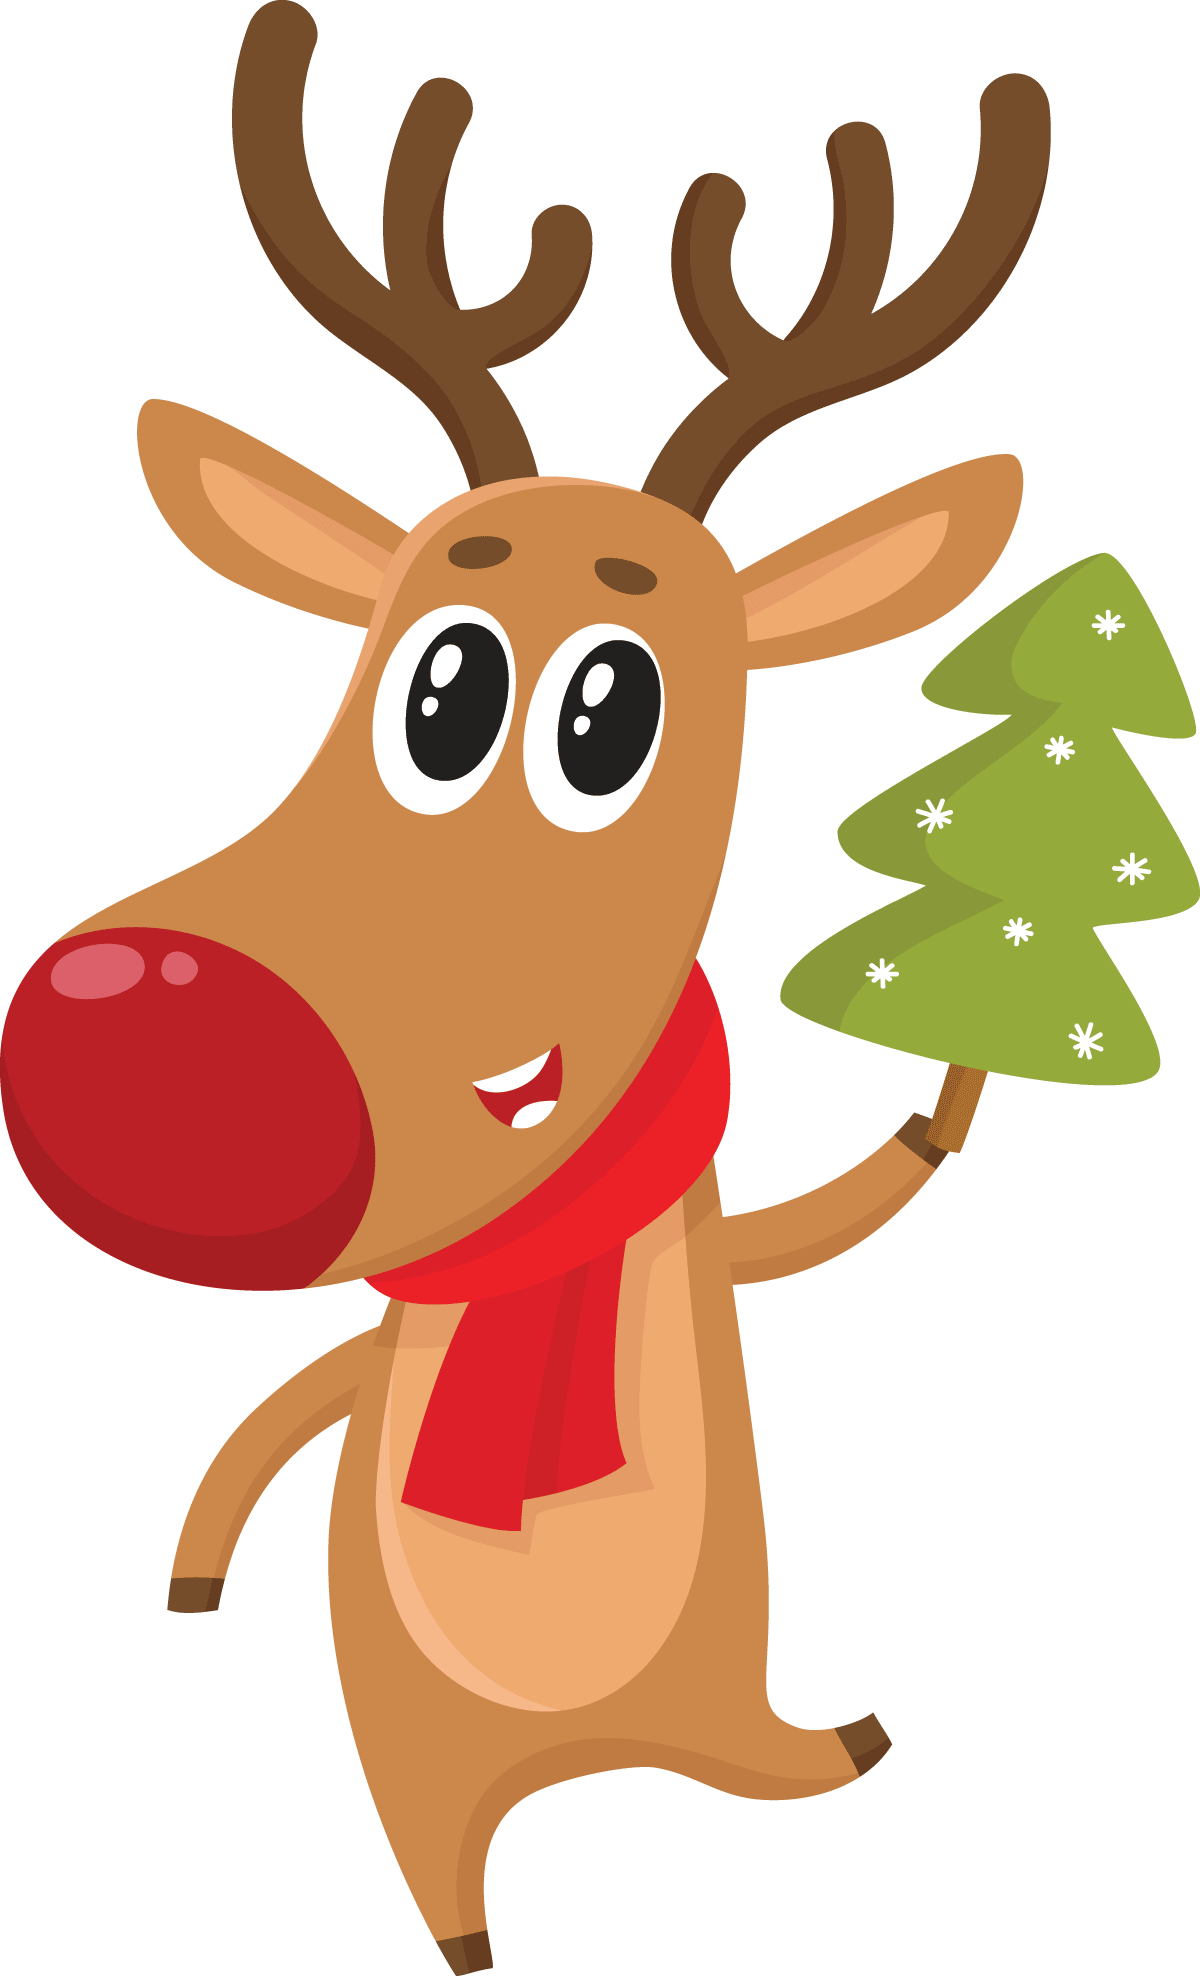 The Christmas Tree that came to Life - As told by a reindeer who decorated a Christmas Tree and it came to life.